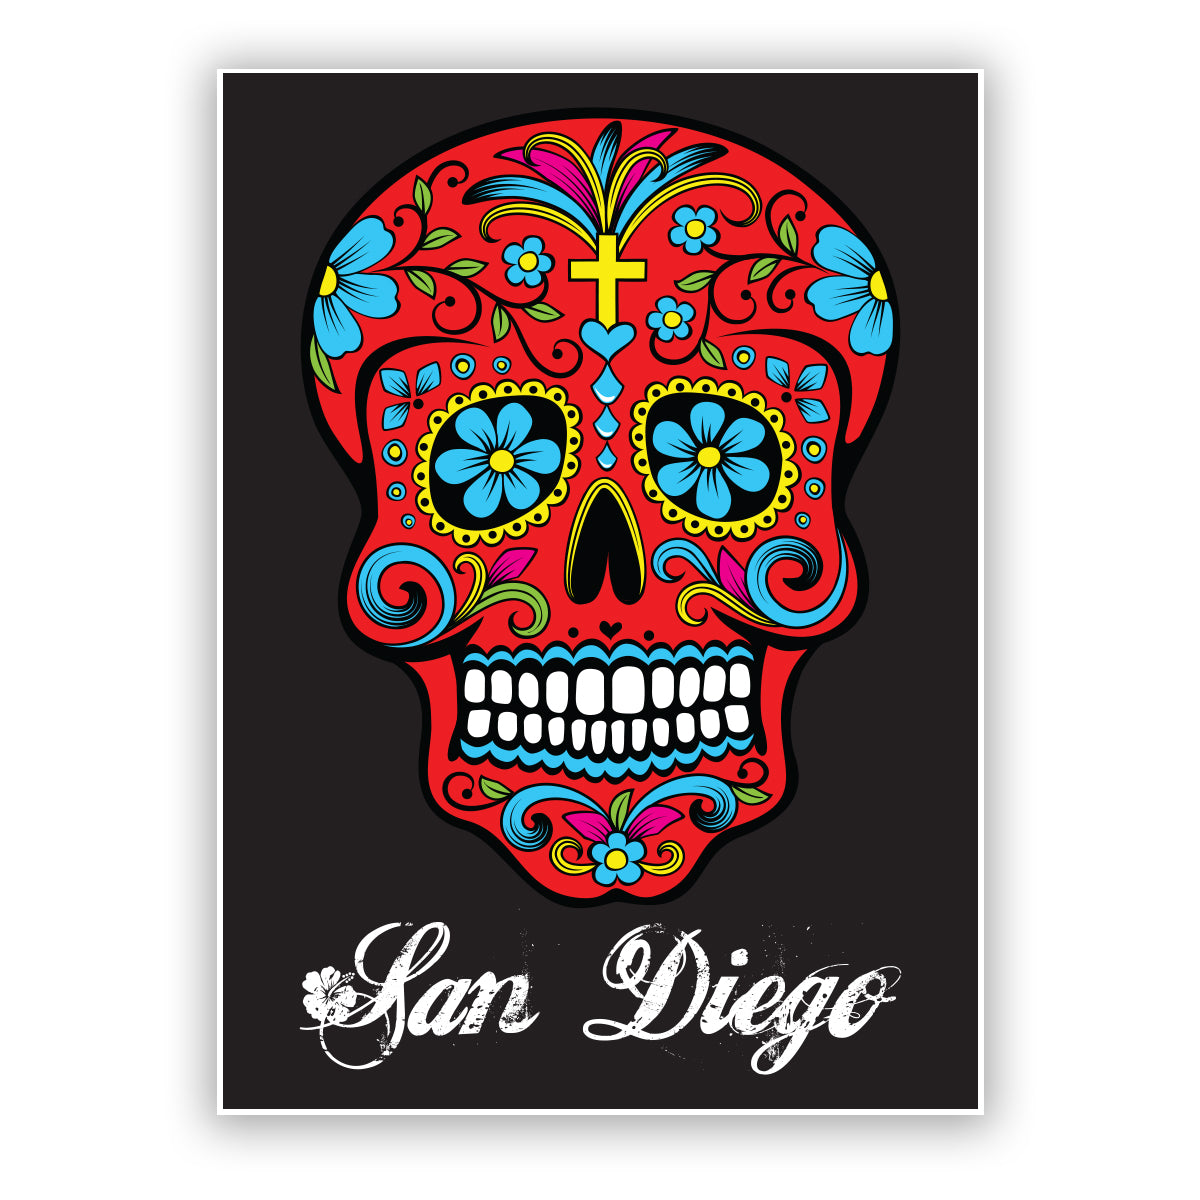 Sugar Skull Sticker San Diego California. Black background, red skull with yellow cross on forehead, blue flowers on eyes and more flower details all around. Cursive San Diego on the bottom. Sold by SDTrading Co.